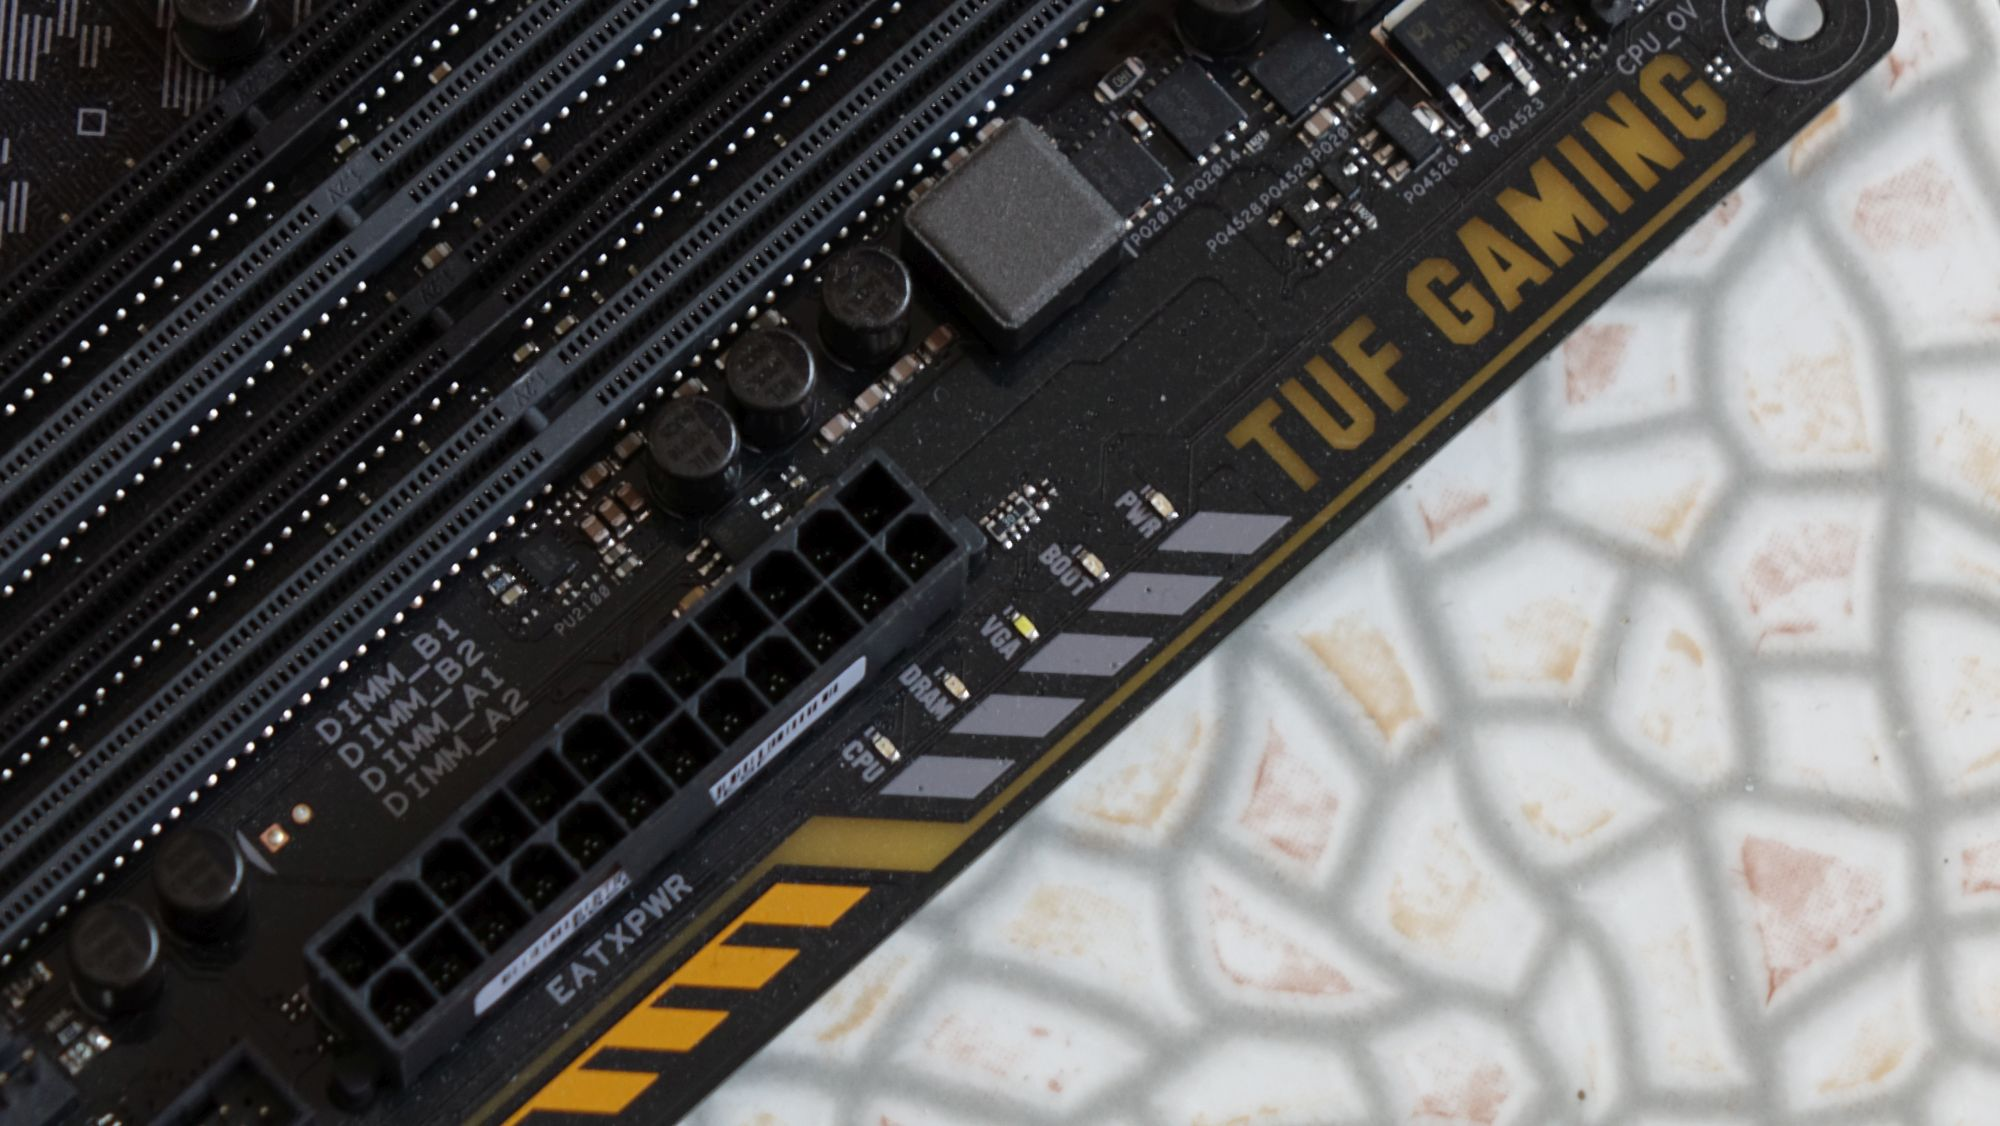 ASUS TUF Z370-Pro Gaming POST